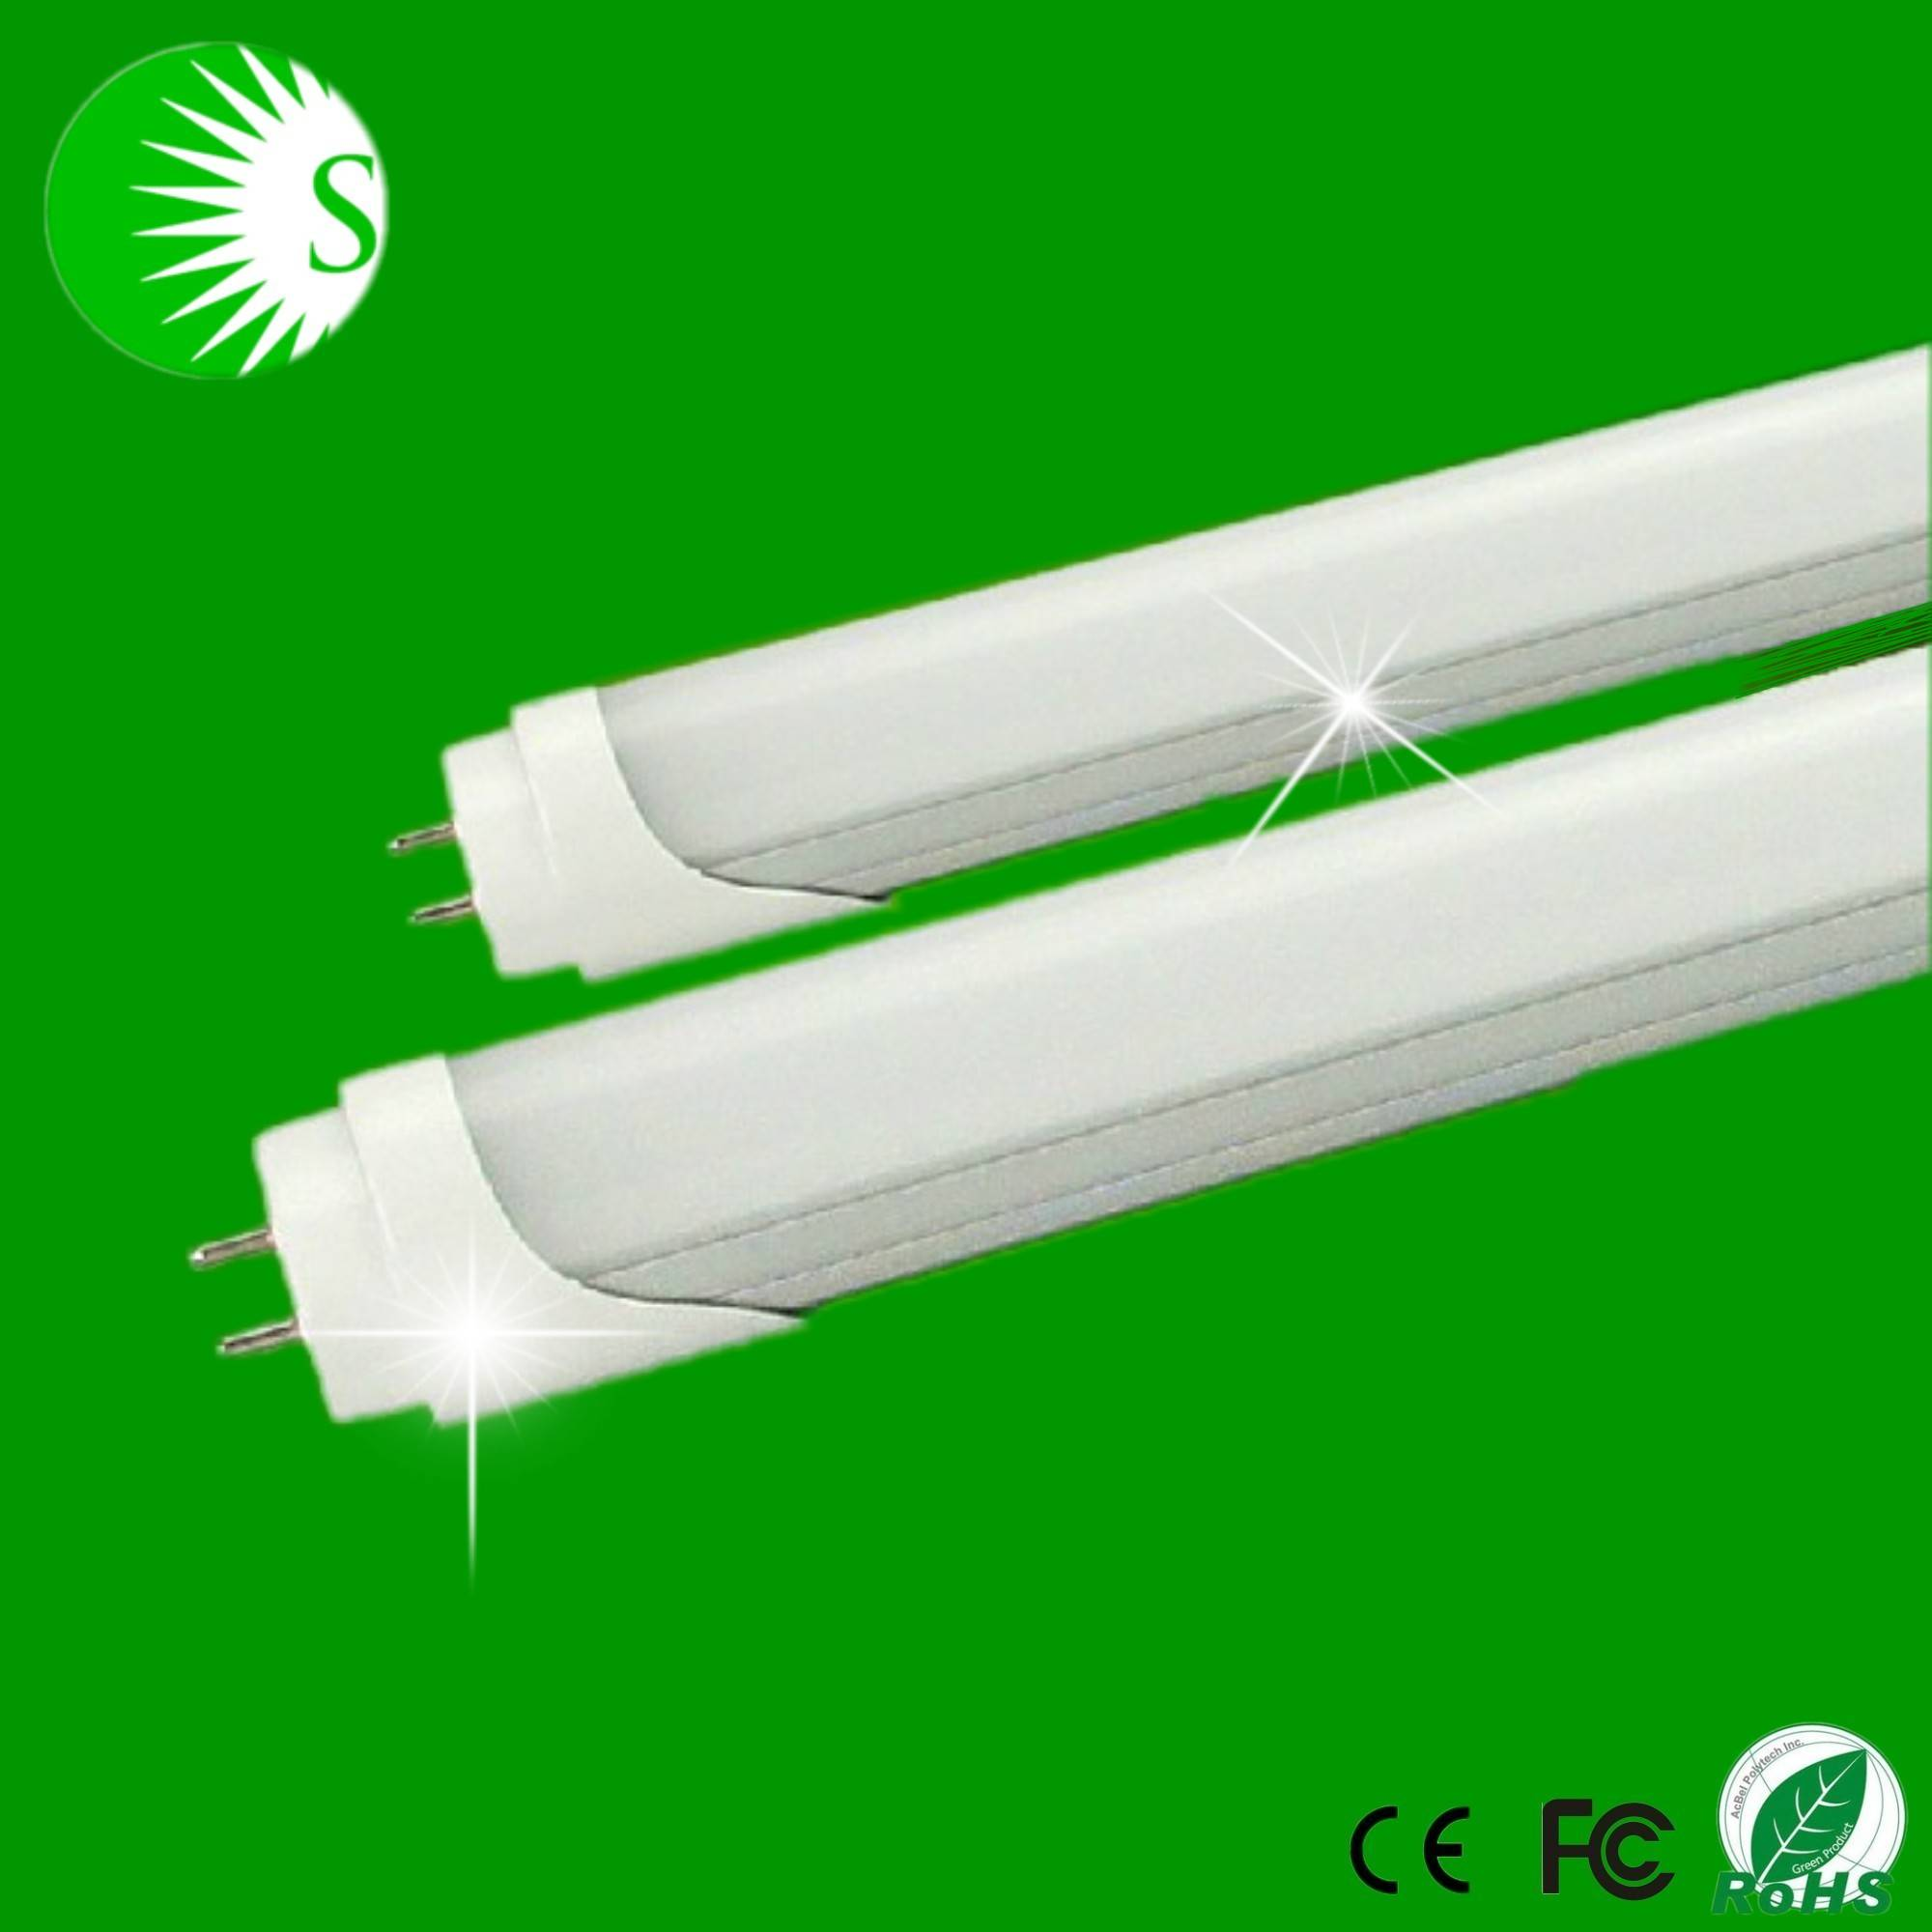 0.6m 0.9m 1.2m 1.5m tube light wide voltage AC85-265V CRI80 Epister led SMD2835 tube8 led xxx animal